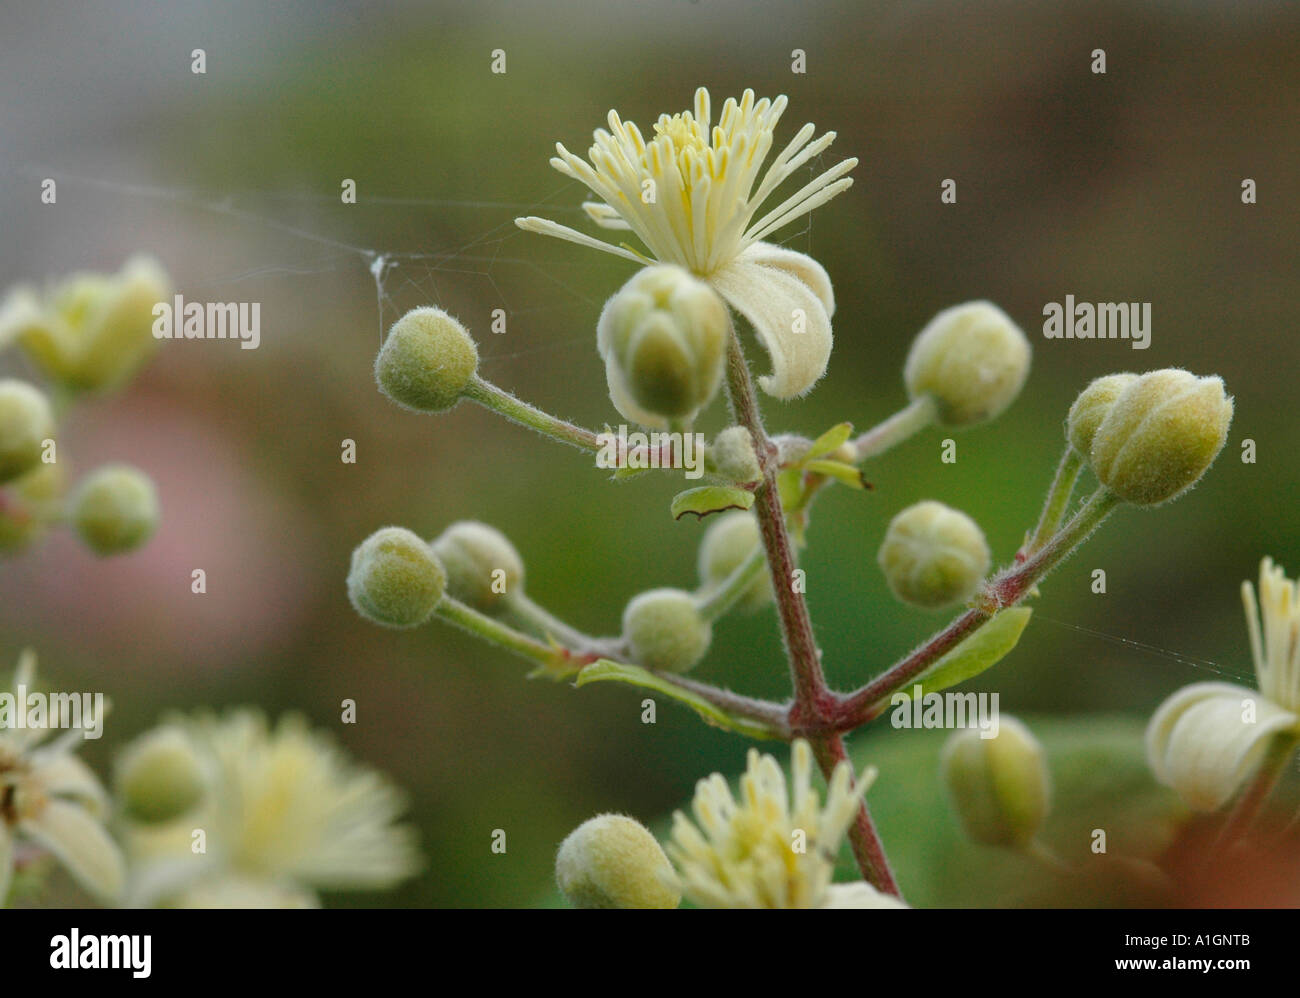 Flowers of Traveller's Joy - Stock Image